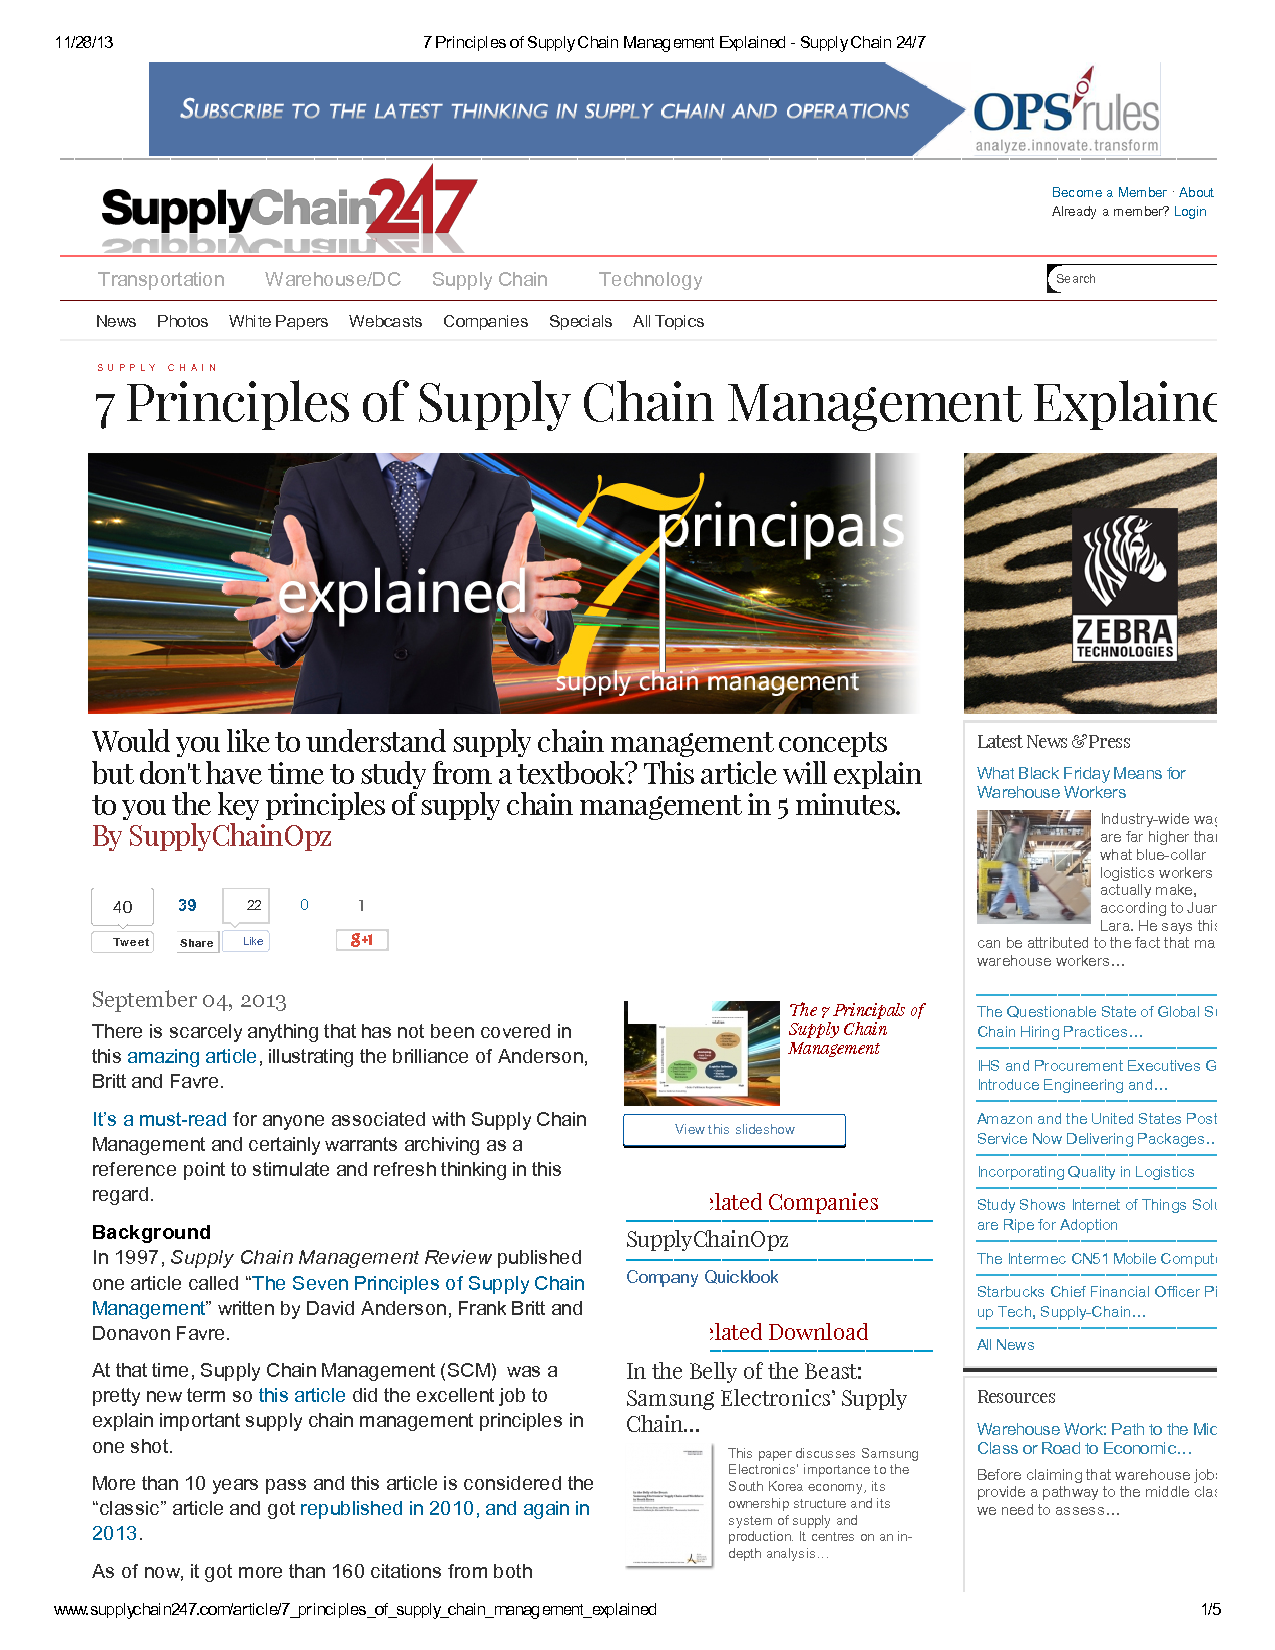 7 principle of supply chain management essay Management principles essay 7 principle of supply chain management chapter review 1-3 principles of supply chain management.